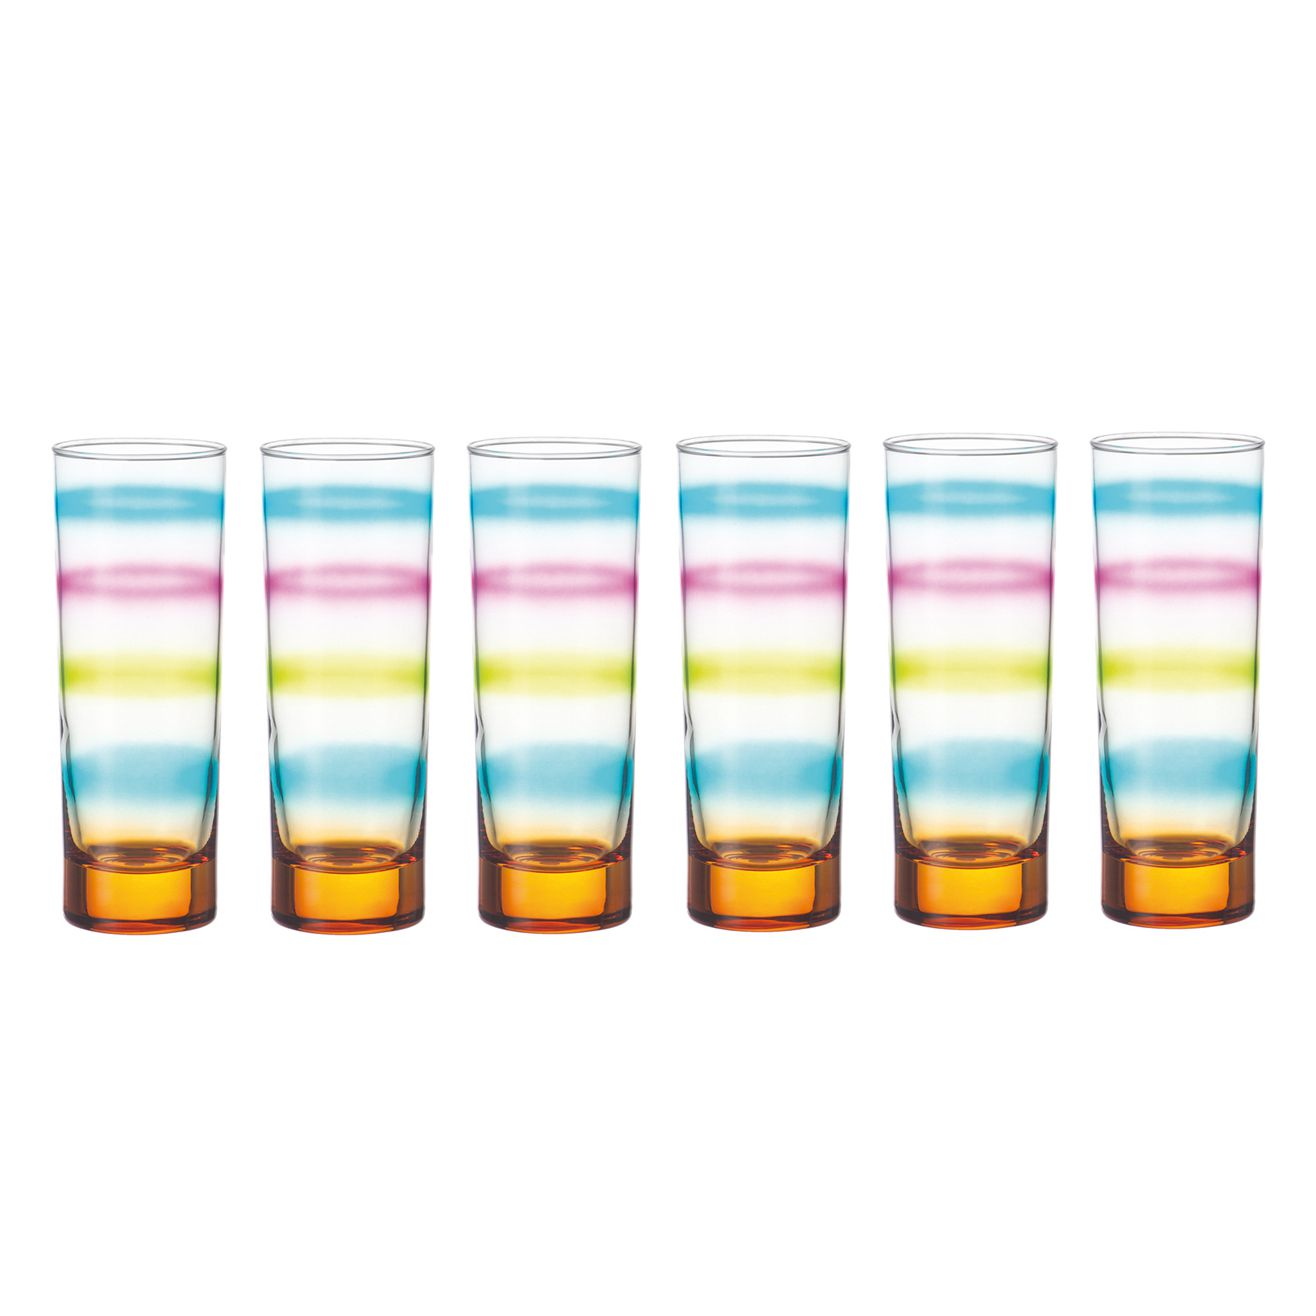 Becher Rainbow (6erSet) – Orange, Leonardo – MLNZAC